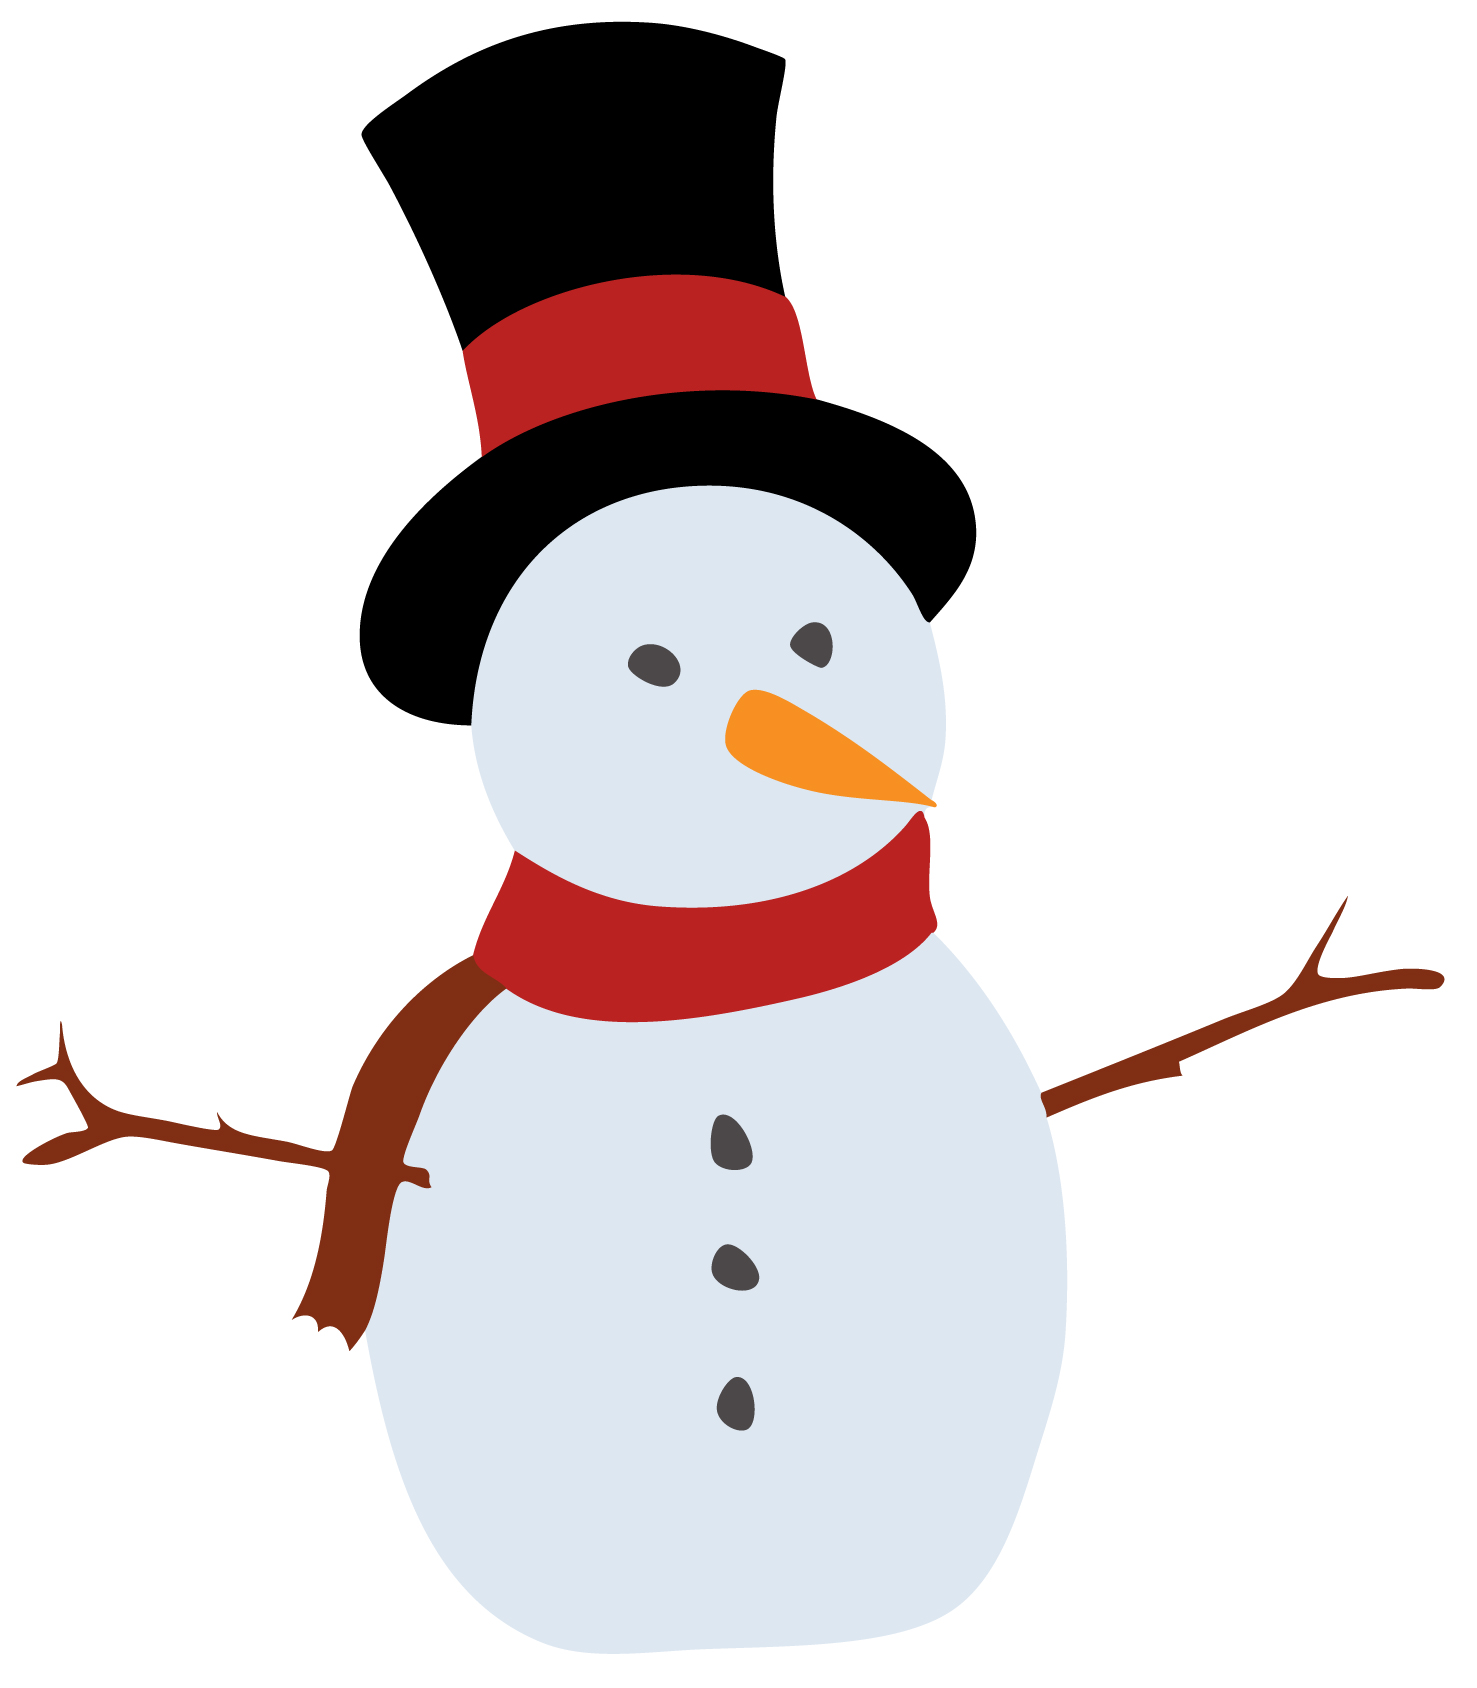 Snowman | Free Early Years & Primary Teaching Resources (EYFS & KS1)